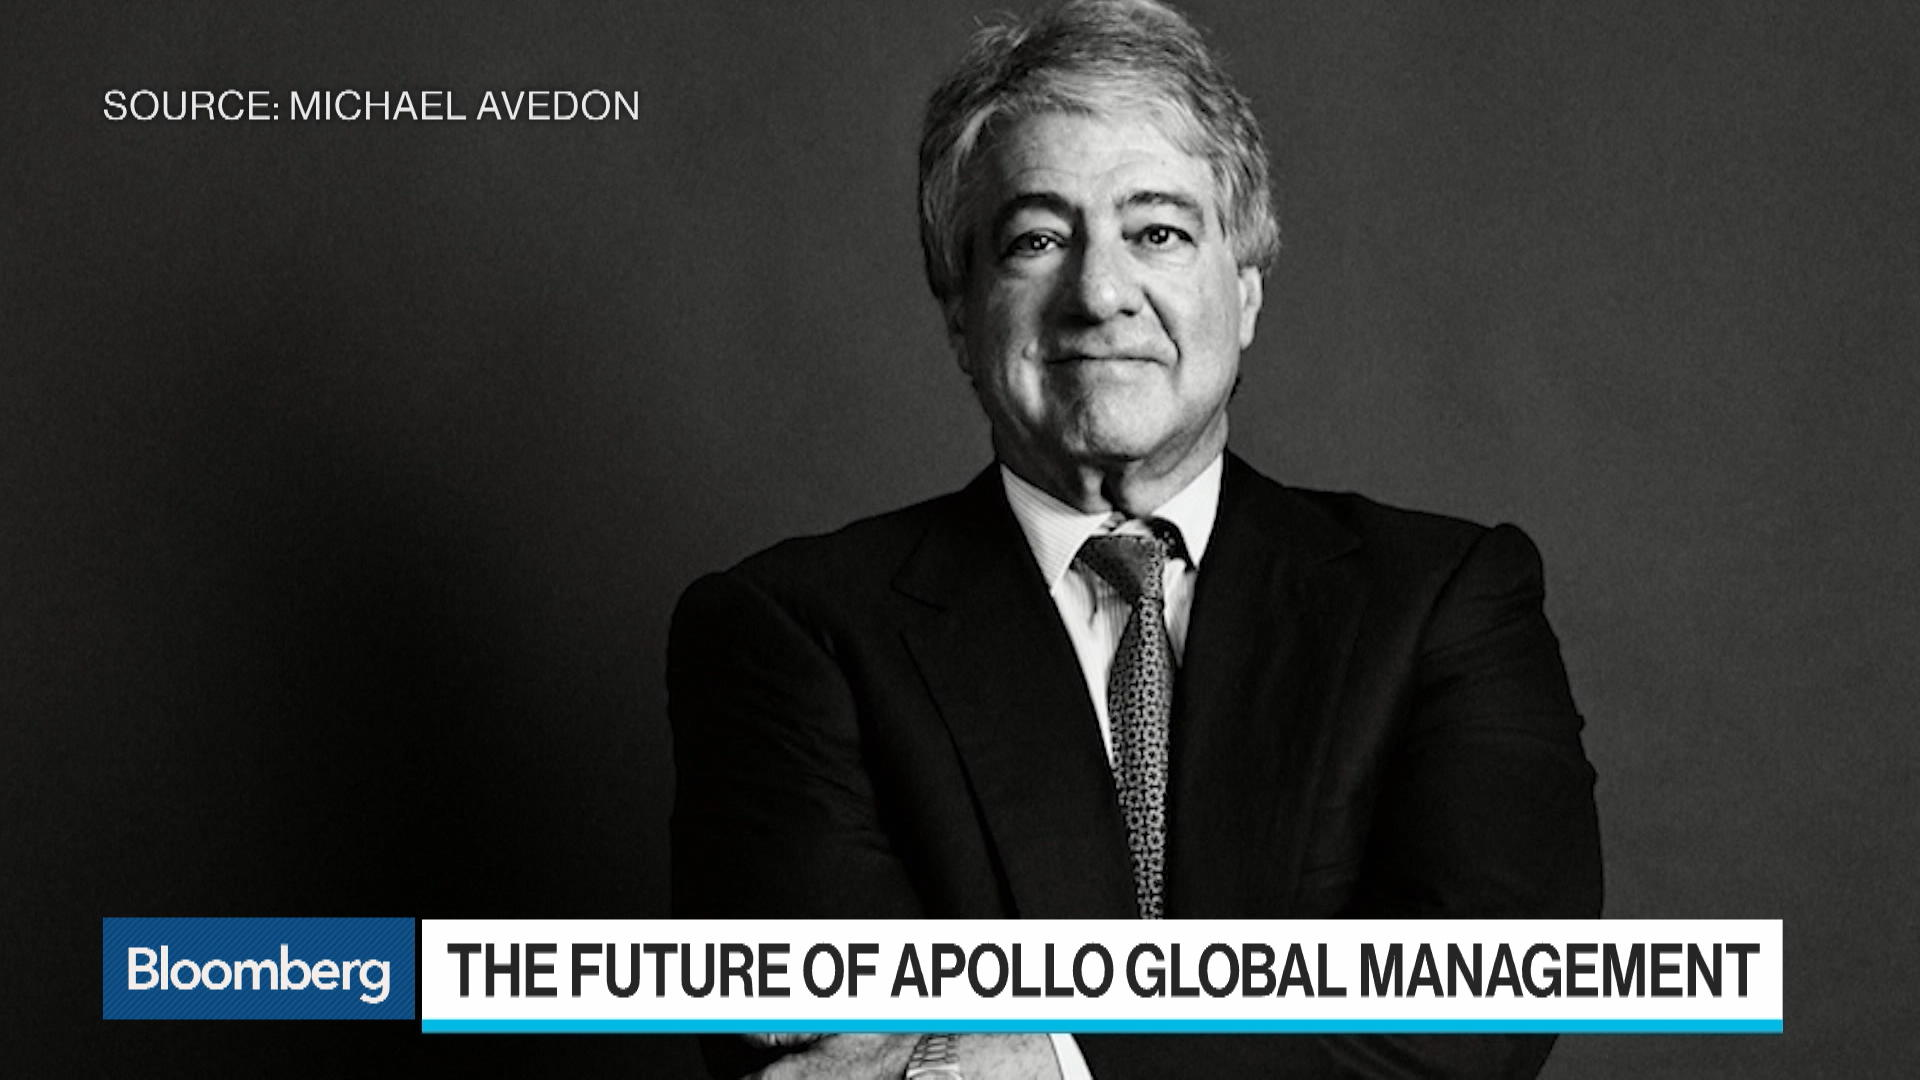 Billionaire Leon Black Is the Most Feared Man in Private Equity: Bloomberg Businessweek